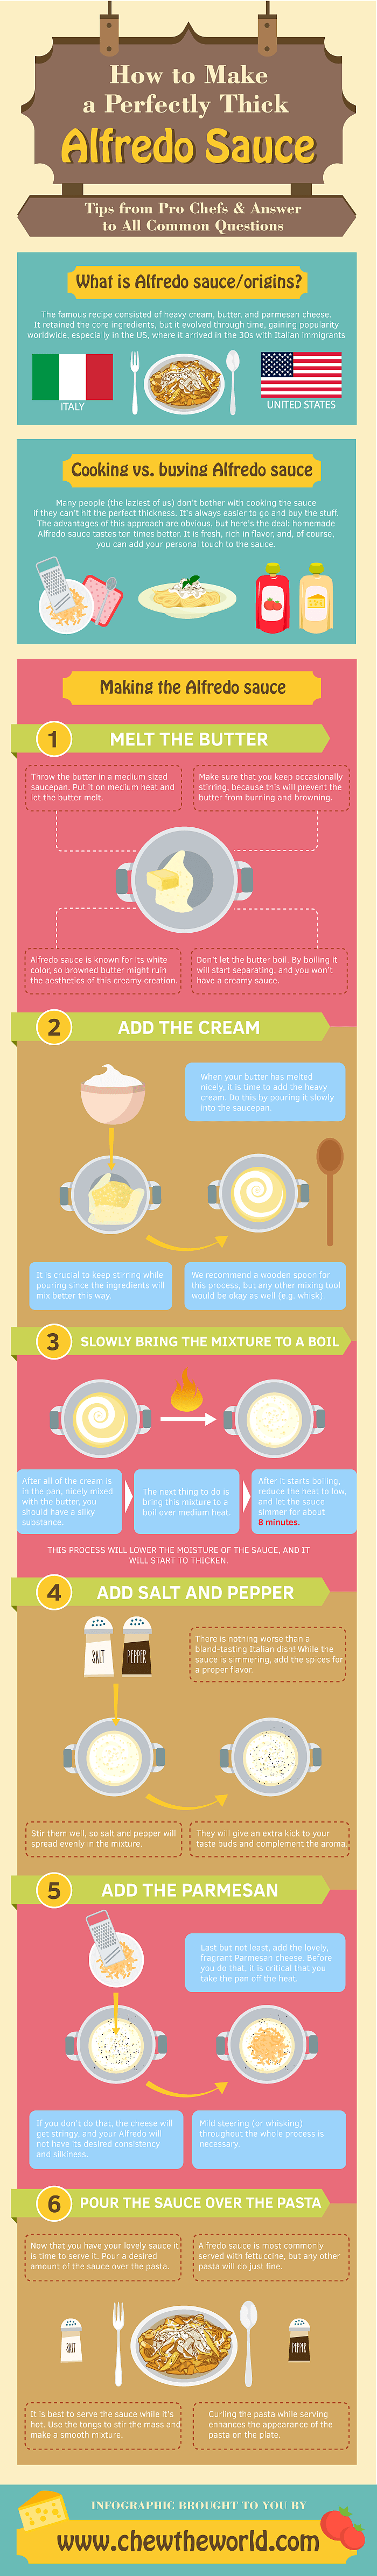 how to make alfredo sauce infographic